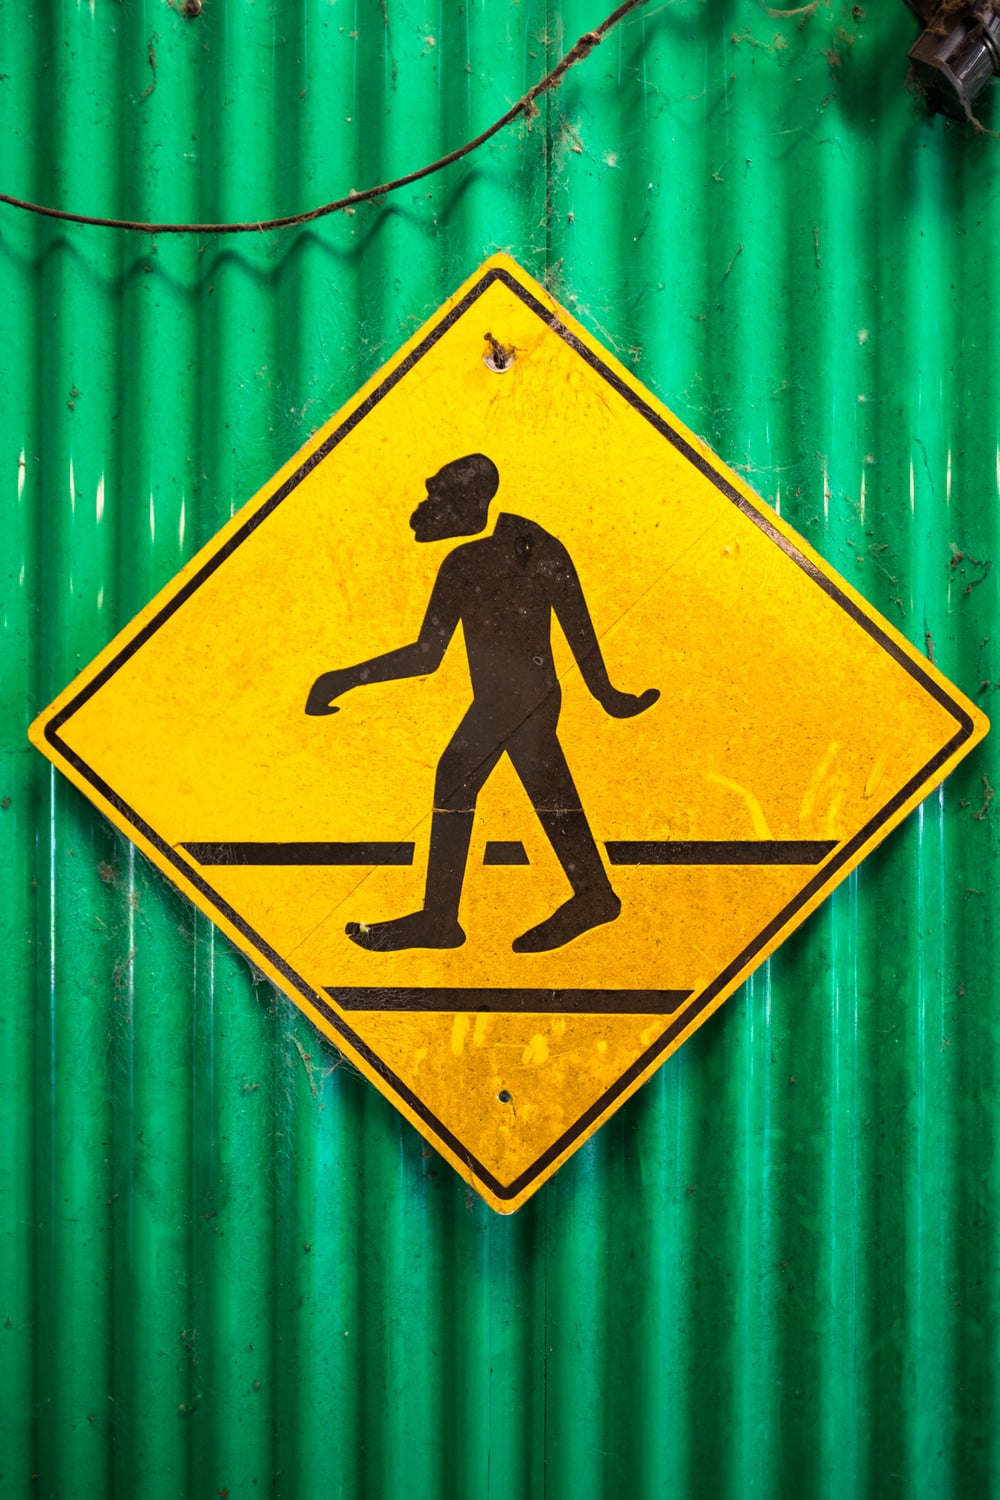 Beware of Skunk Ape crossing! The local bigfoot.